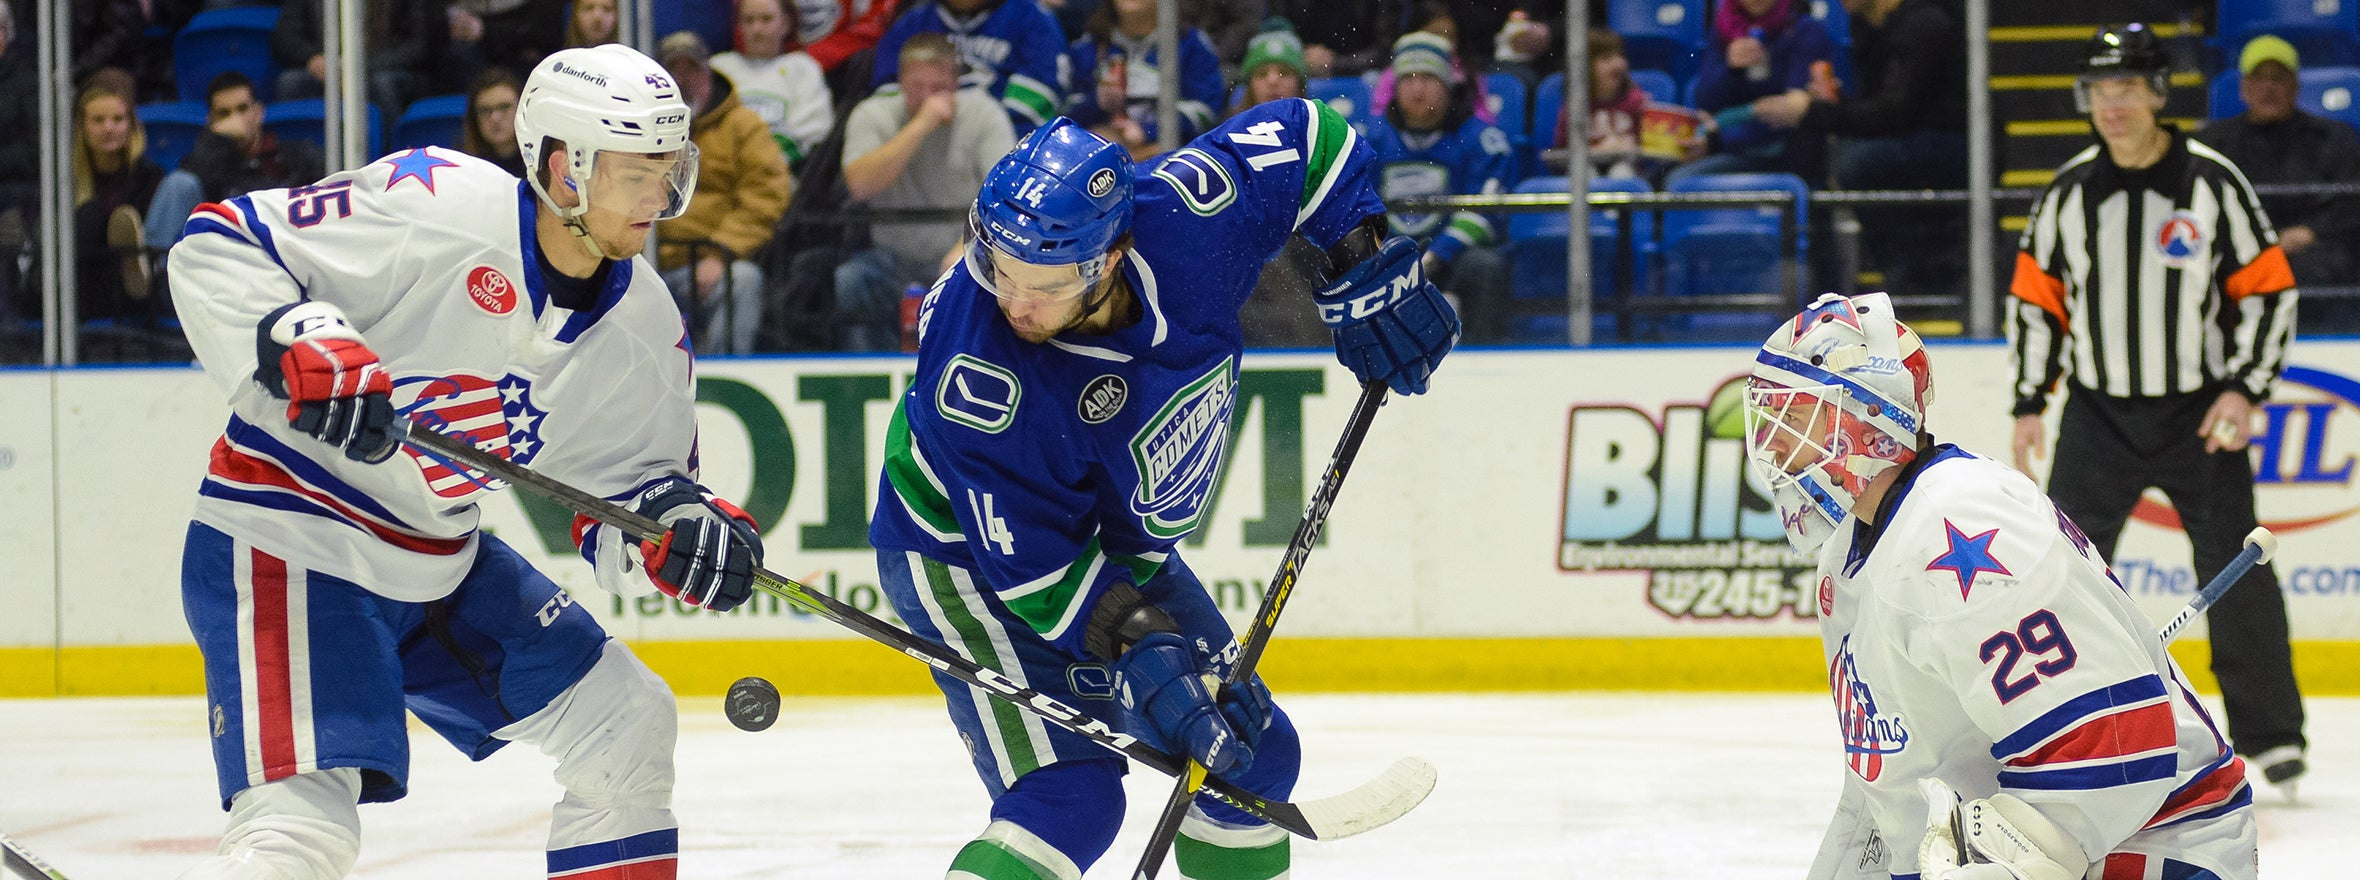 COMETS FALL IN OVERTIME, EXTEND POINT STREAK TO EIGHT